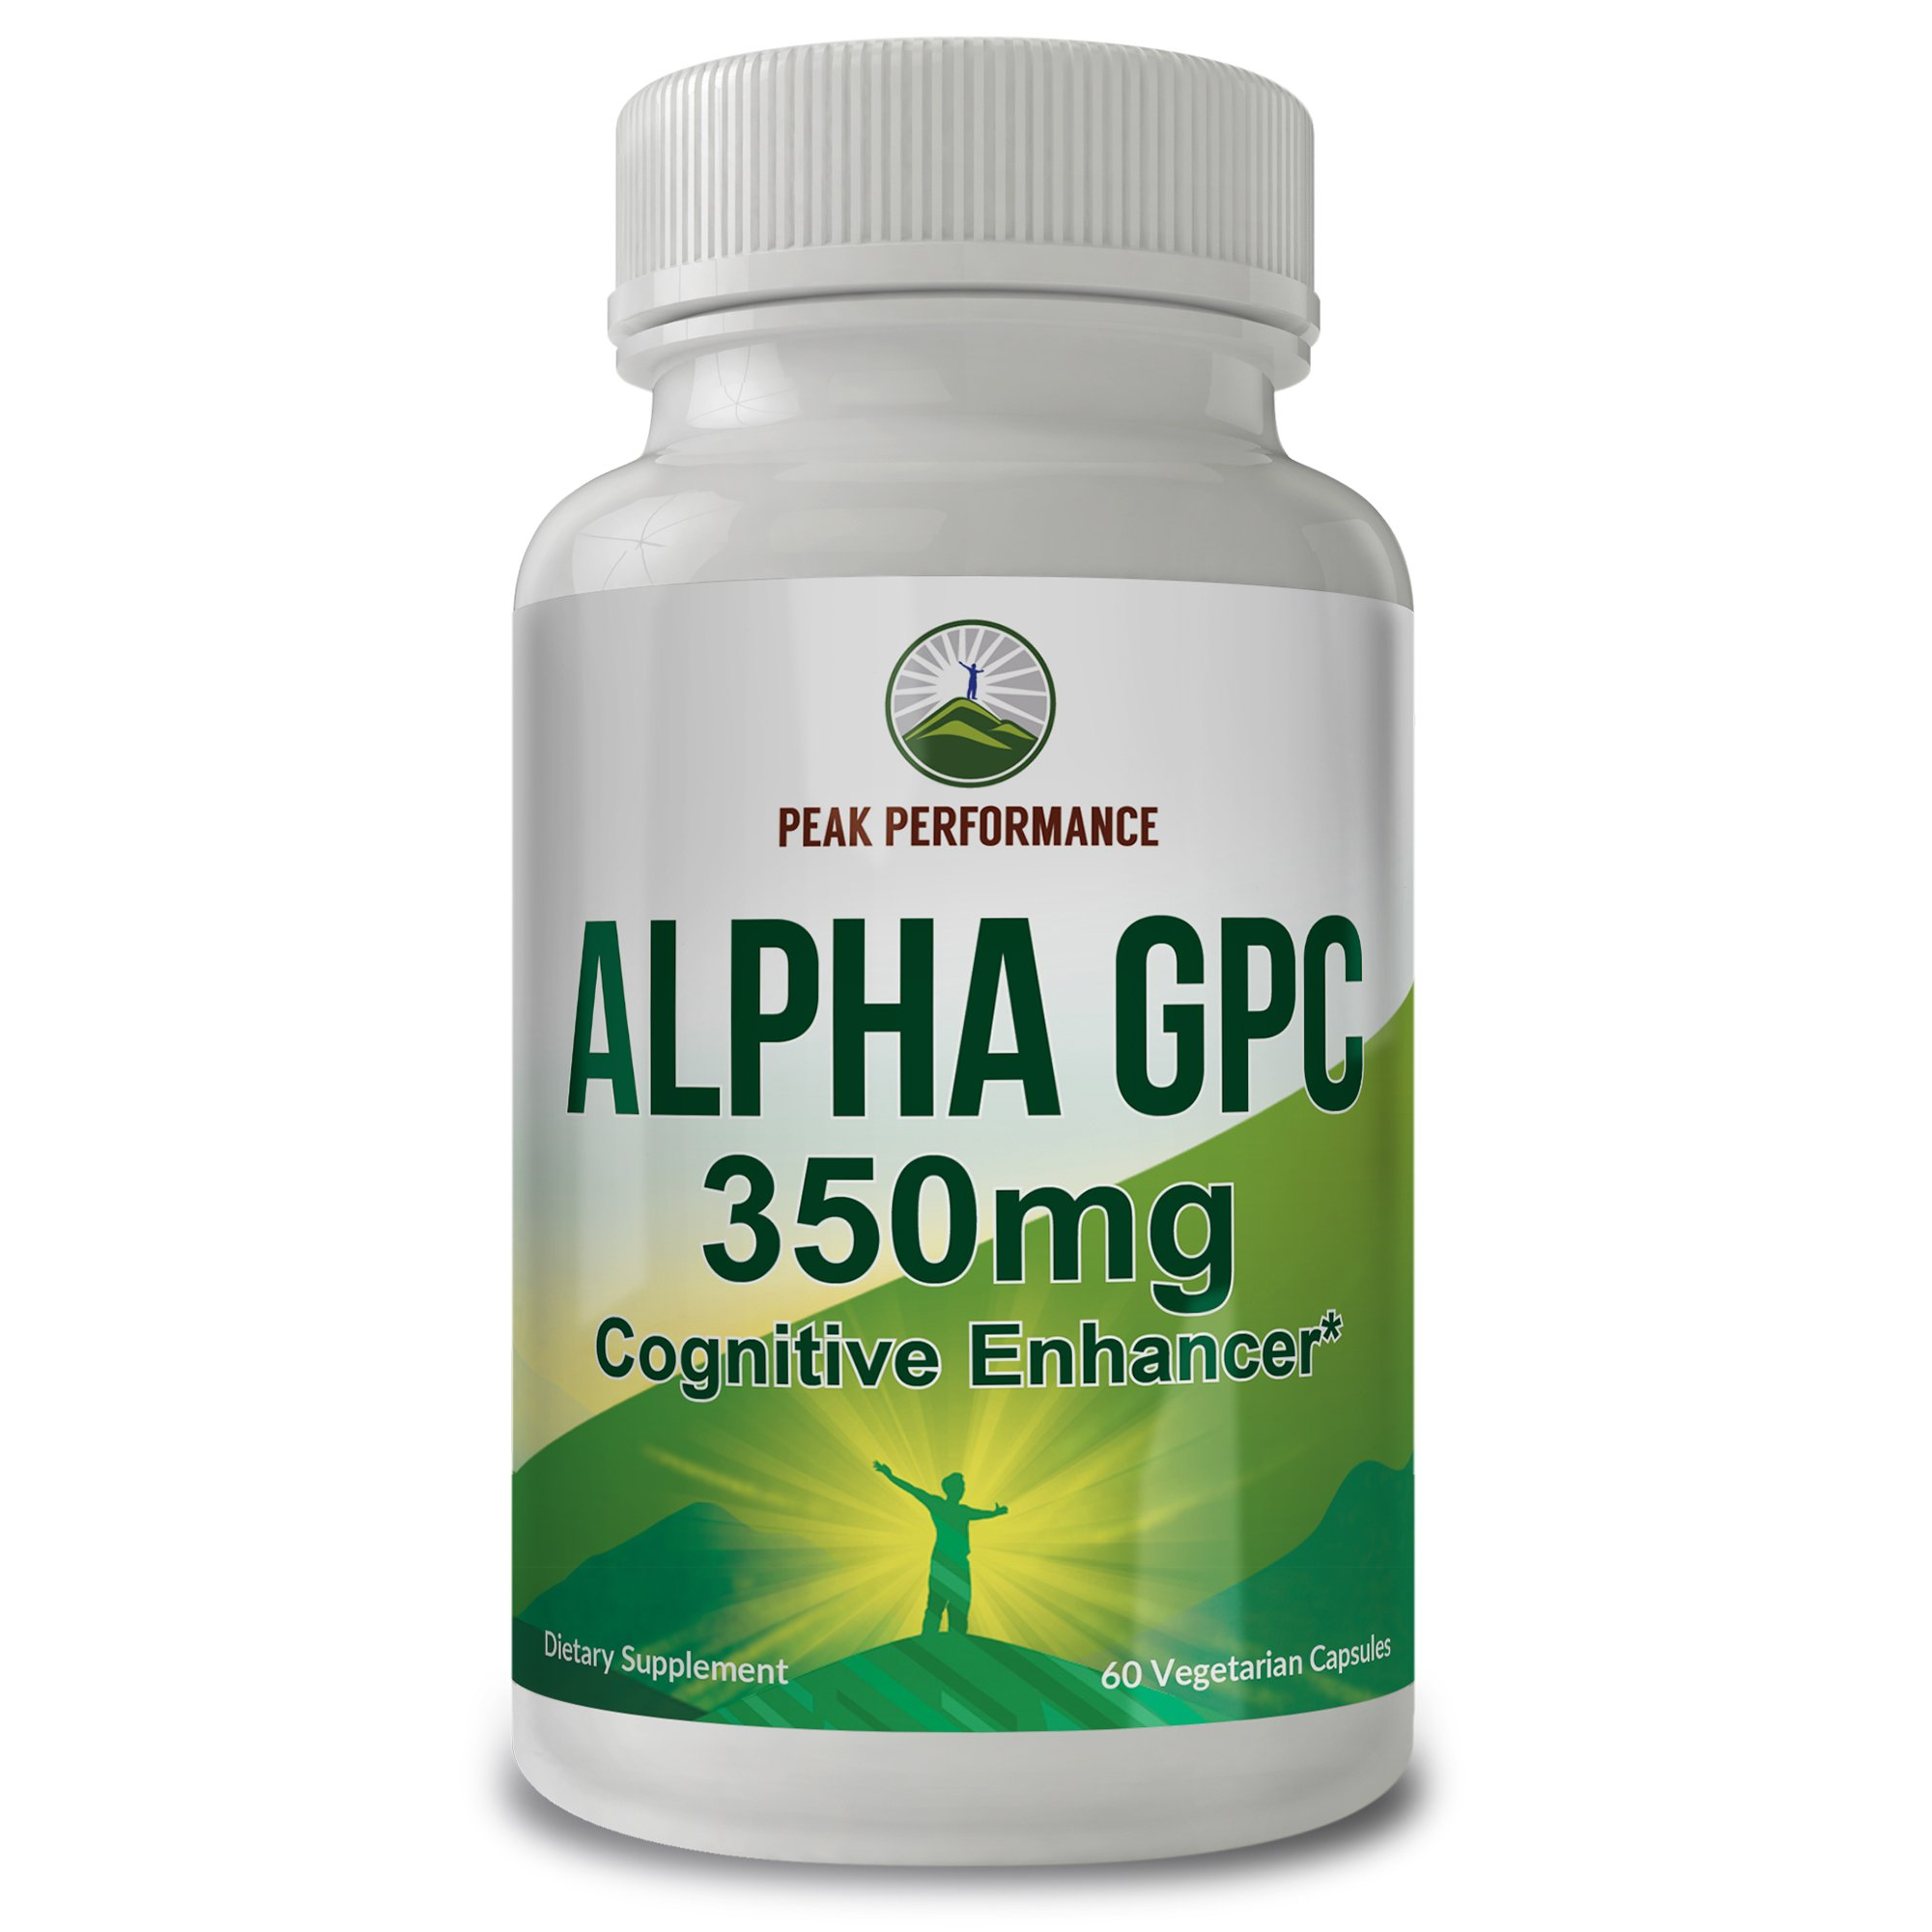 Alpha GPC 350mg Nootropic Cognitive Enhancer by Peak Performance with High Choline Bioavailability. for Memory, Attention & Neuroprotection. 60 Vegetarian Capsules